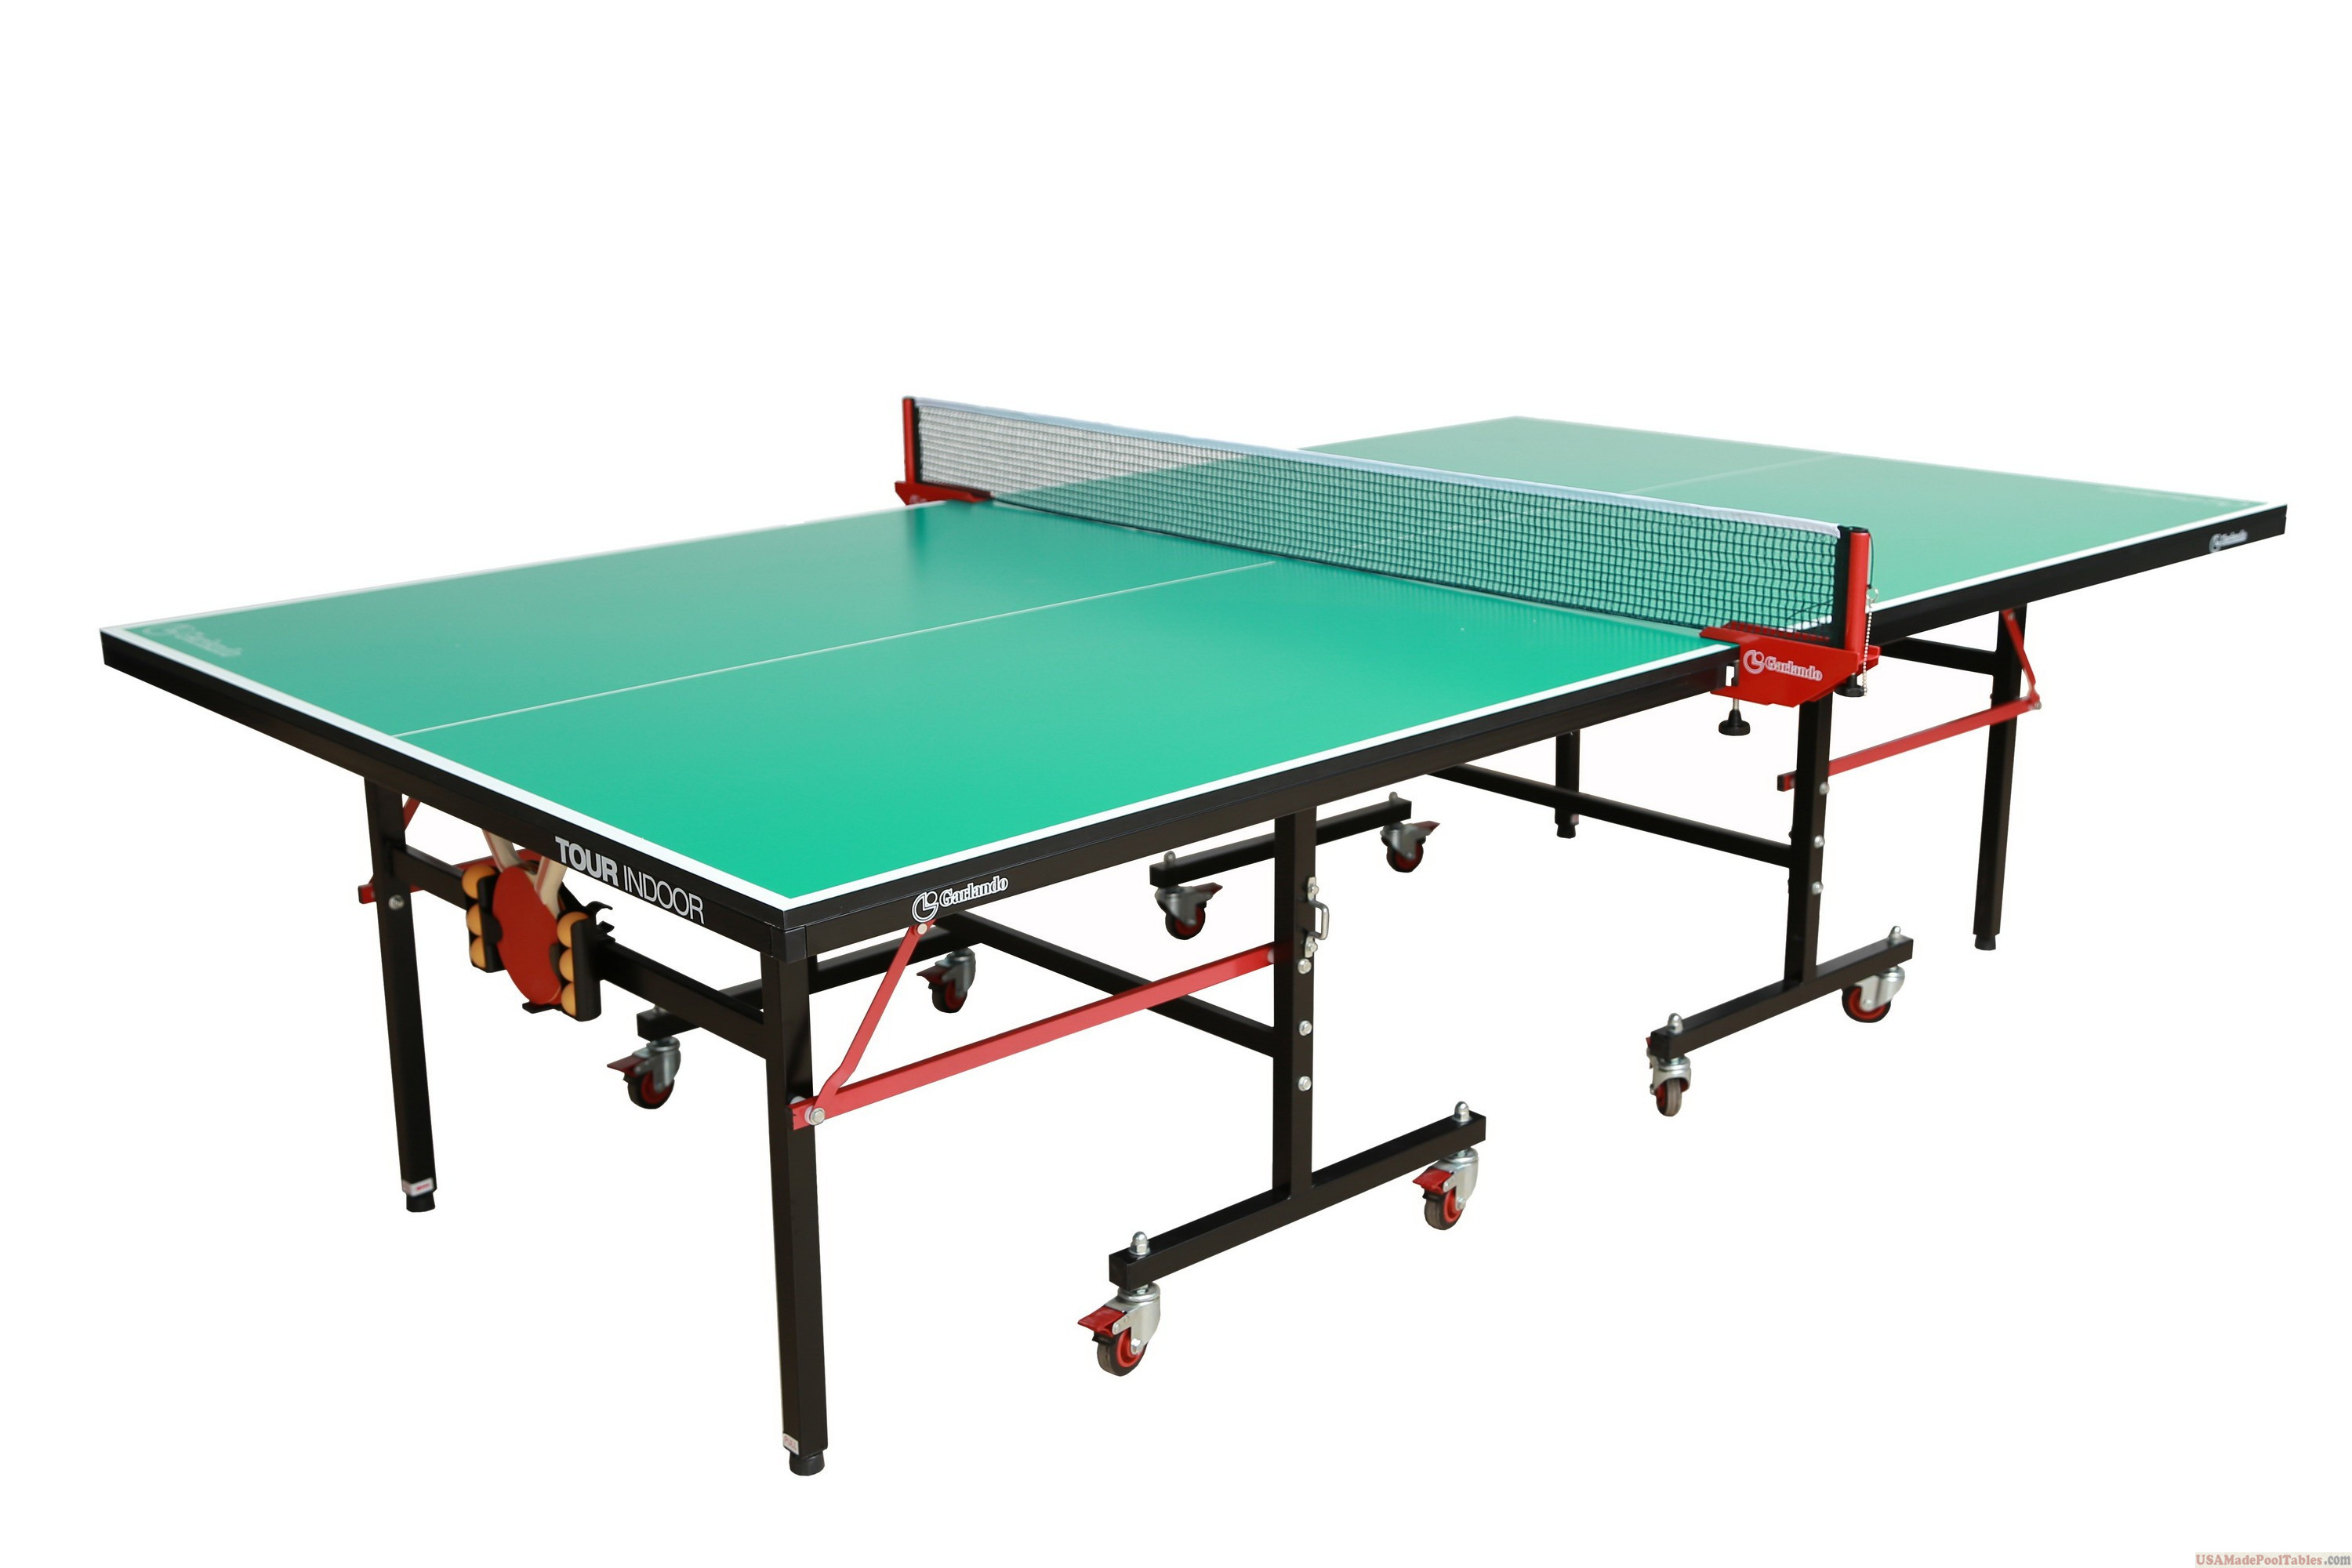 TOUR INDOOR TABLE TENNIS TABLE